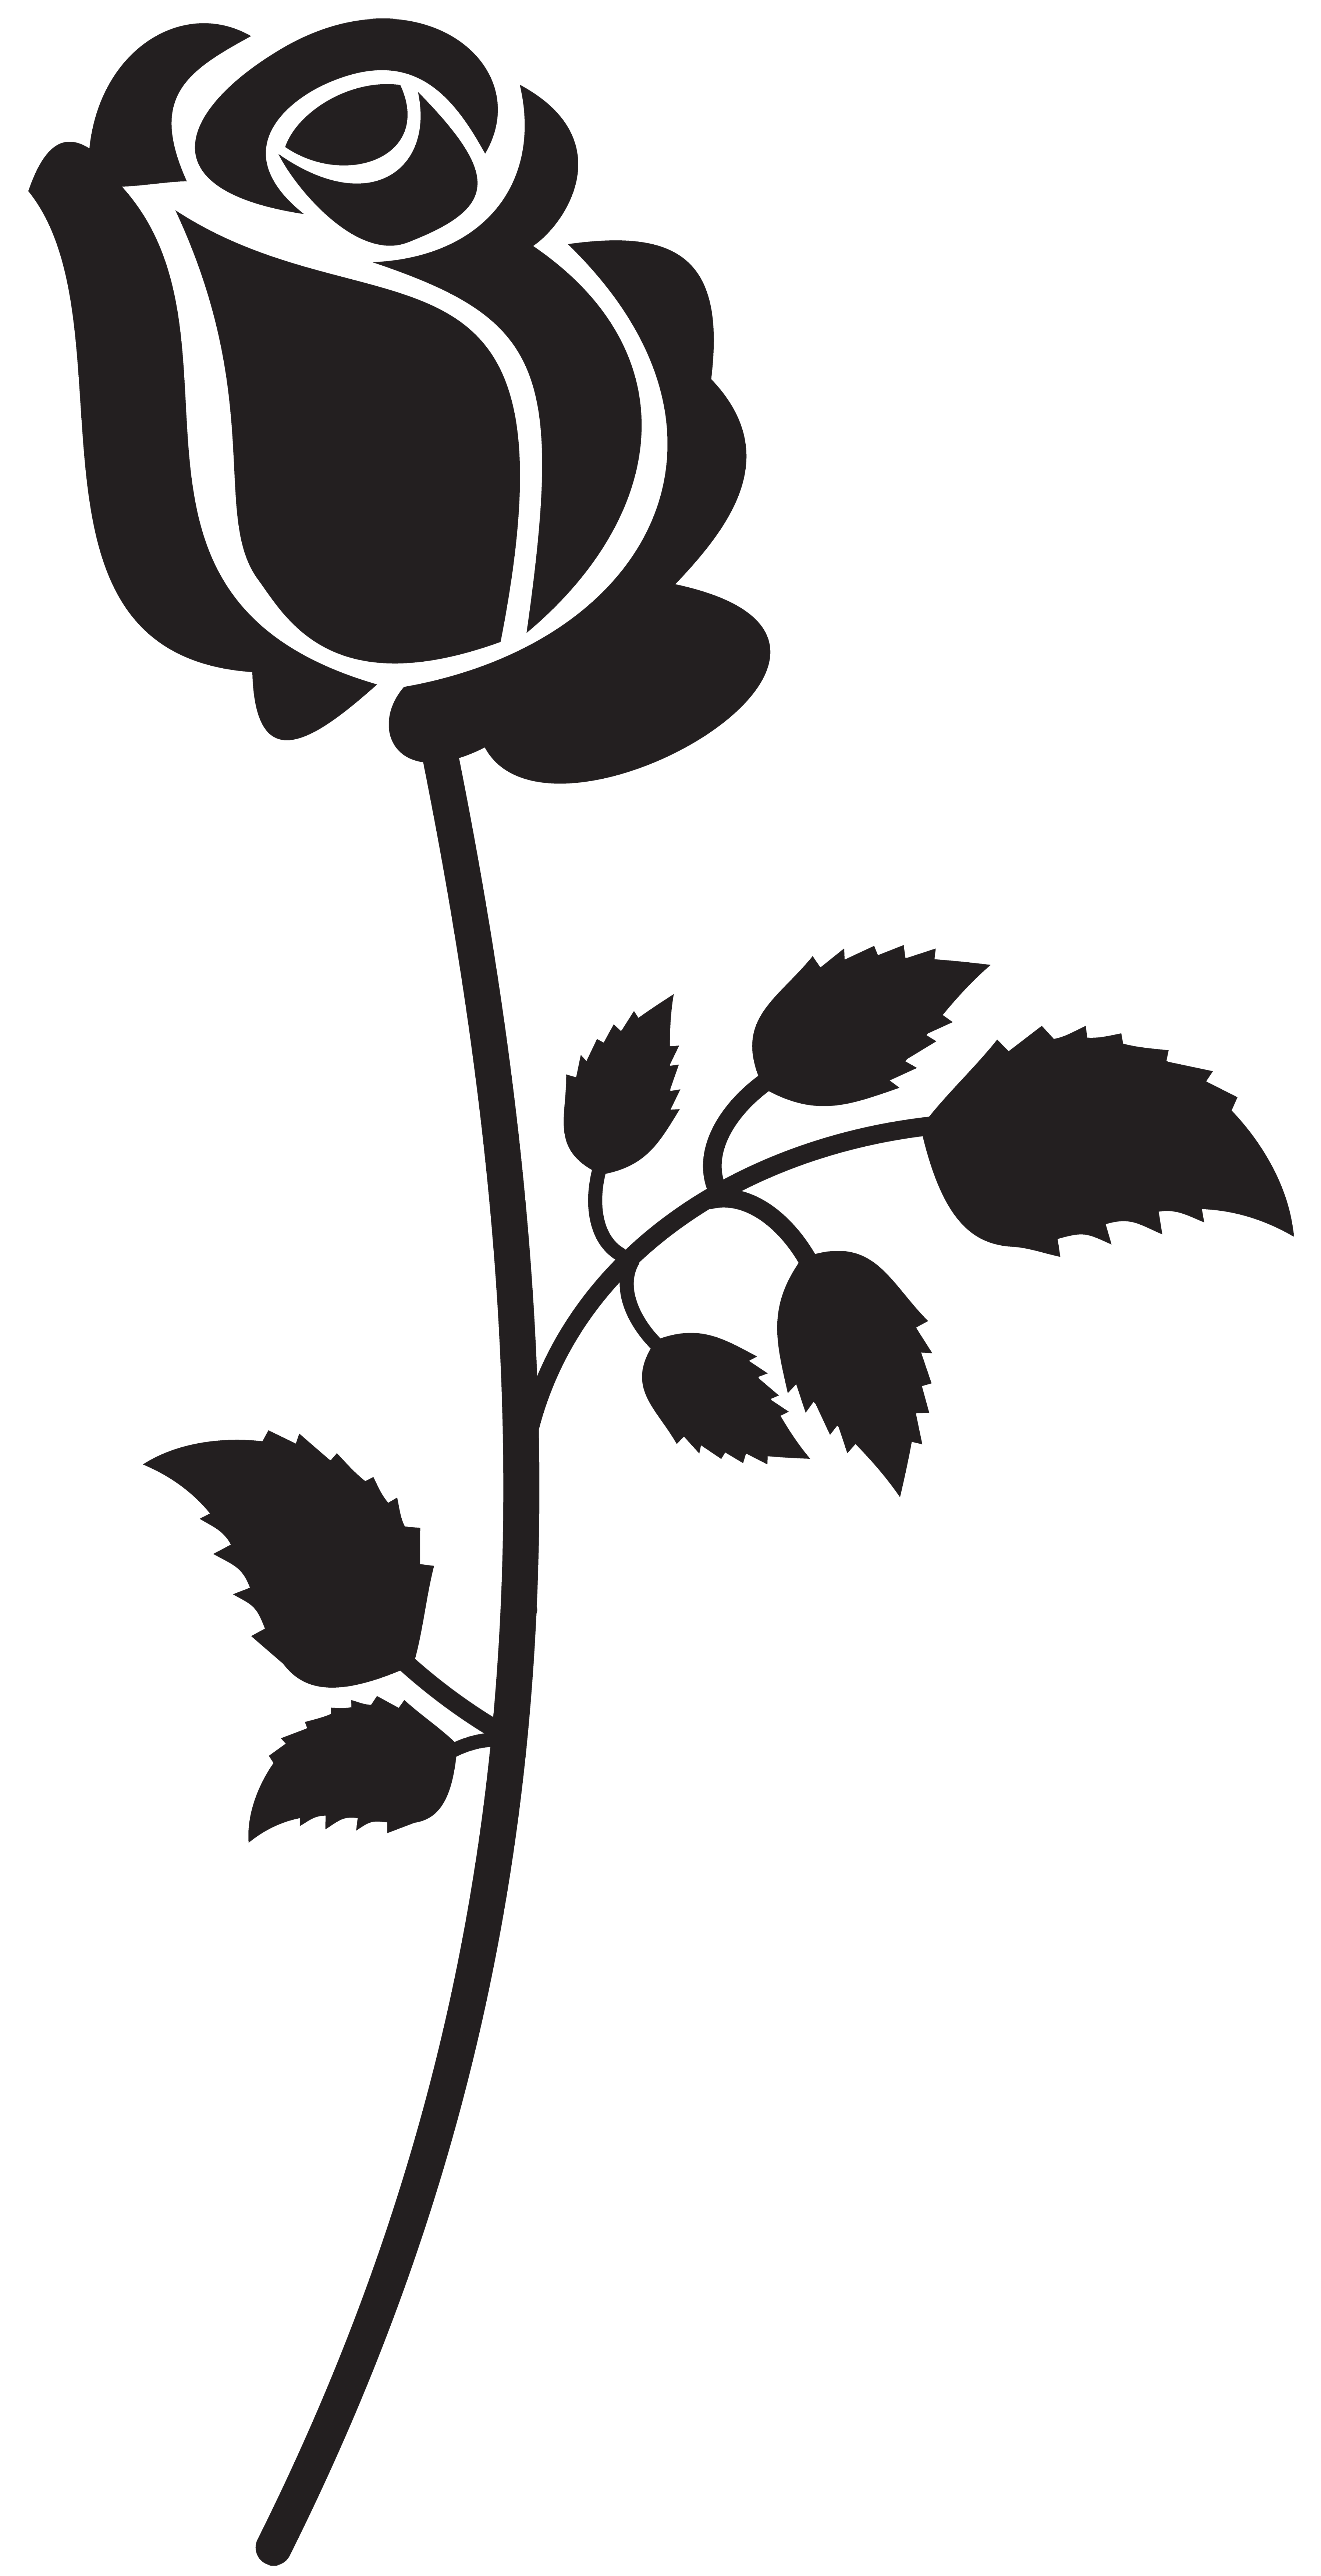 jpg black and white download Rose Silhouette Clip Art at GetDrawings